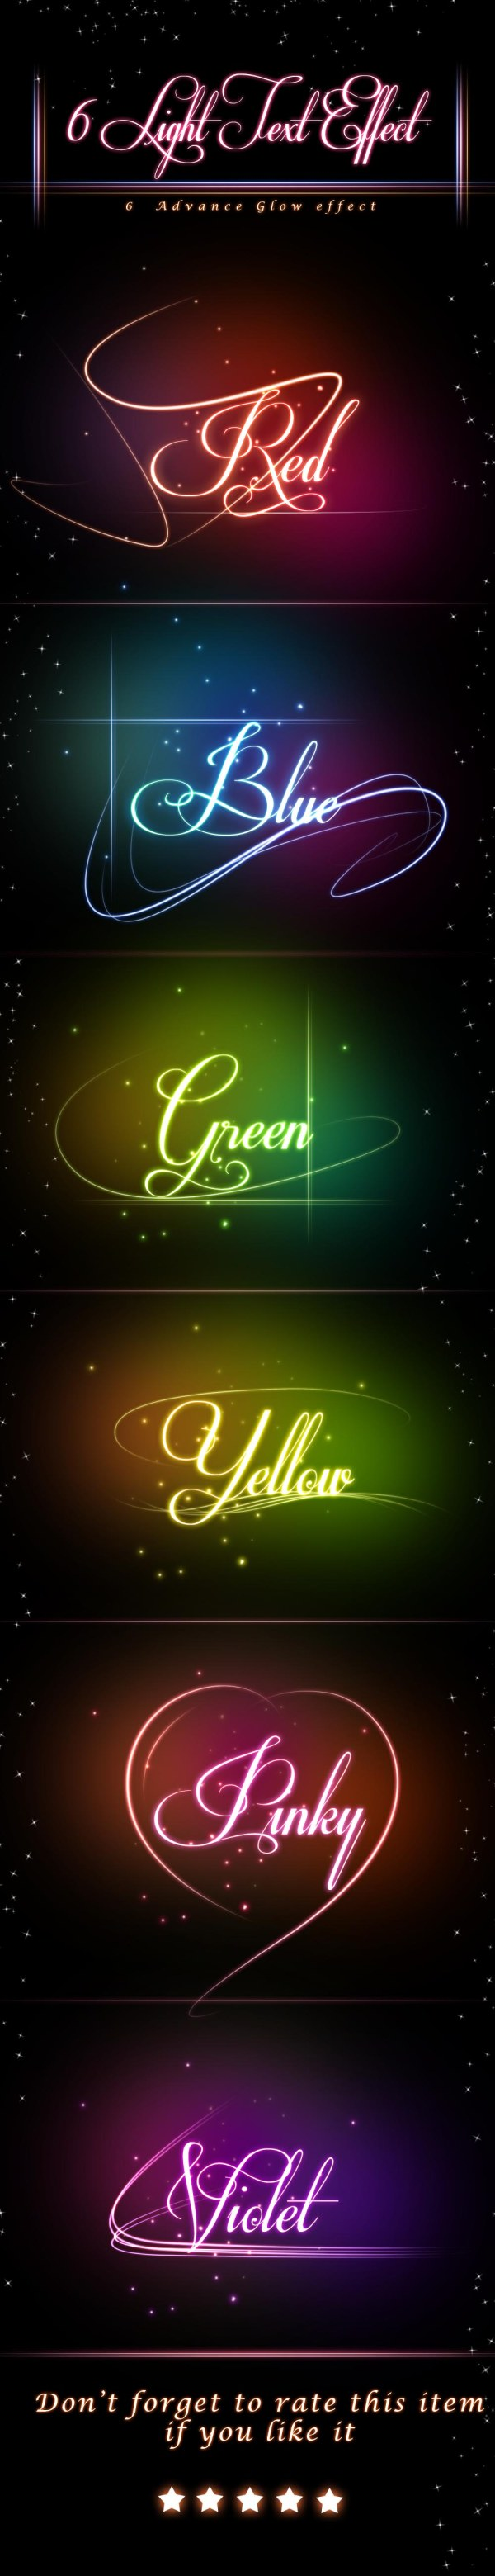 Glowing text effects psd material free download